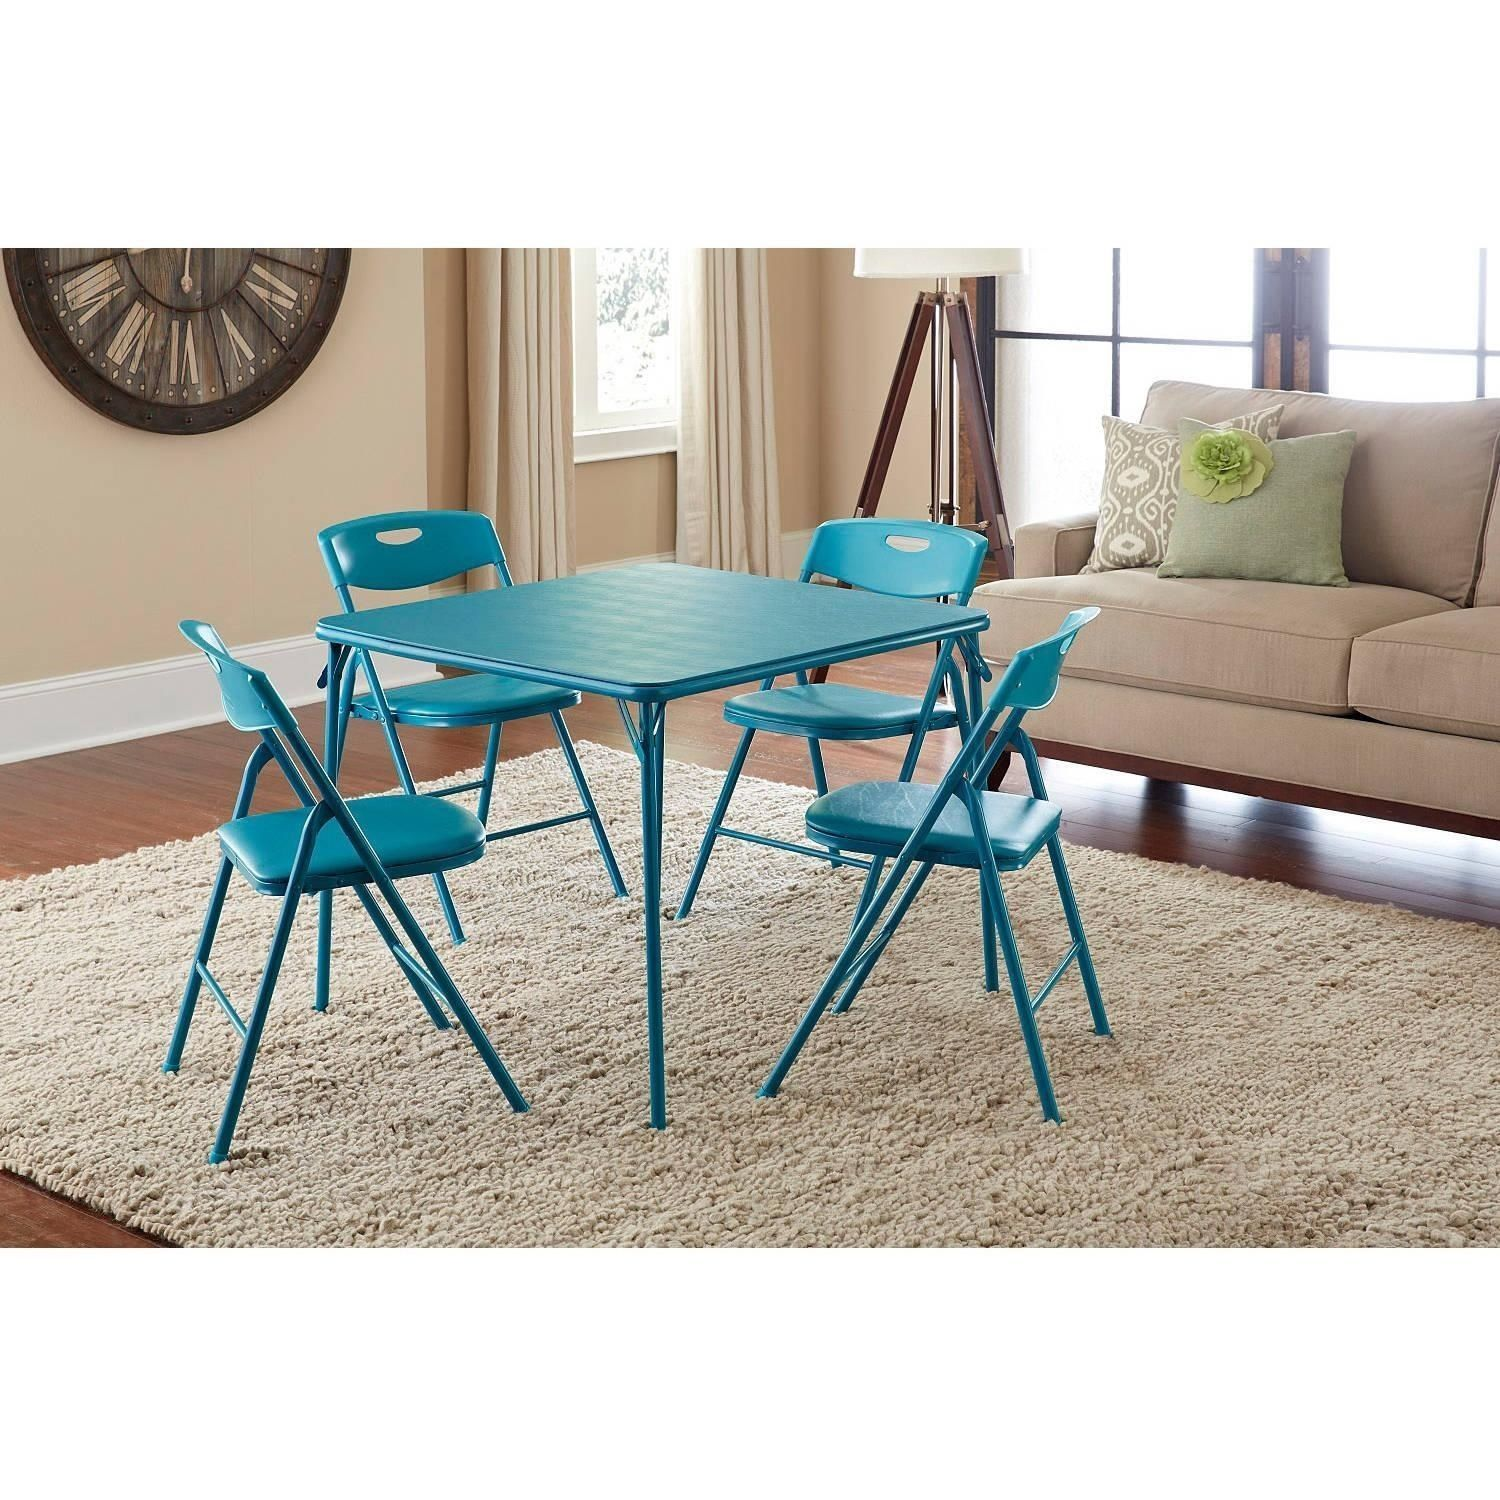 Awesome Card Tables and Chairs Sets